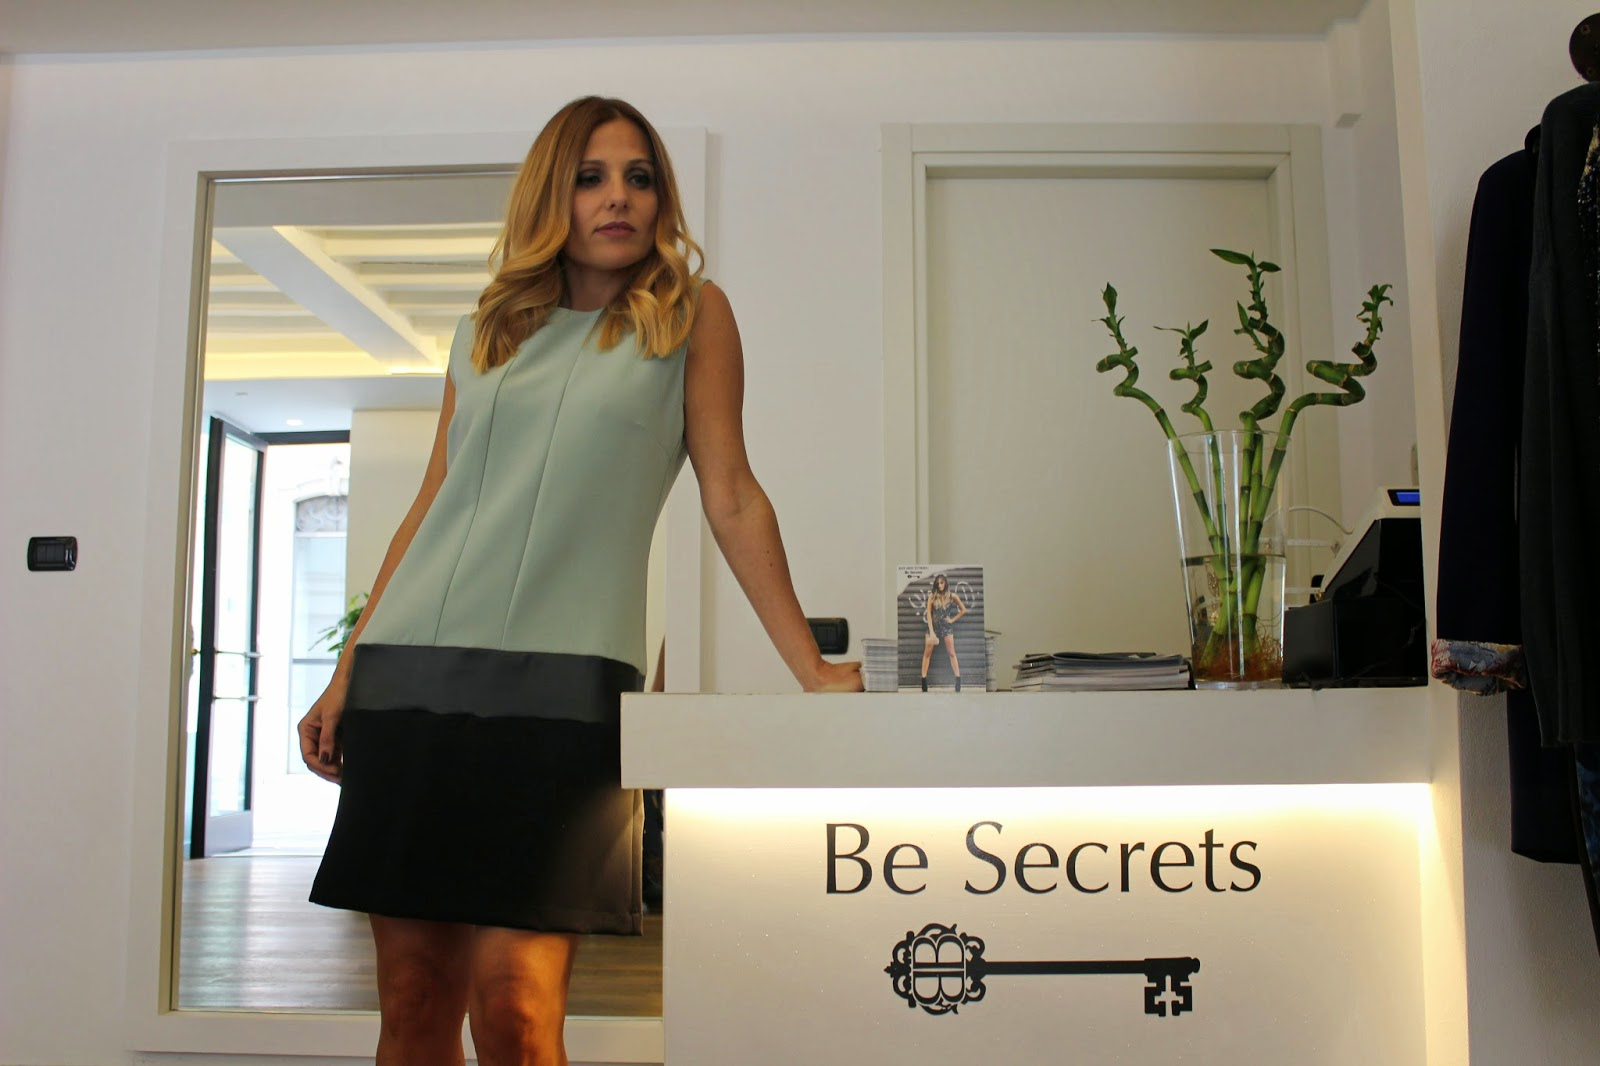 Eniwhere Fashion - Be Secrets - Vestito bicolore